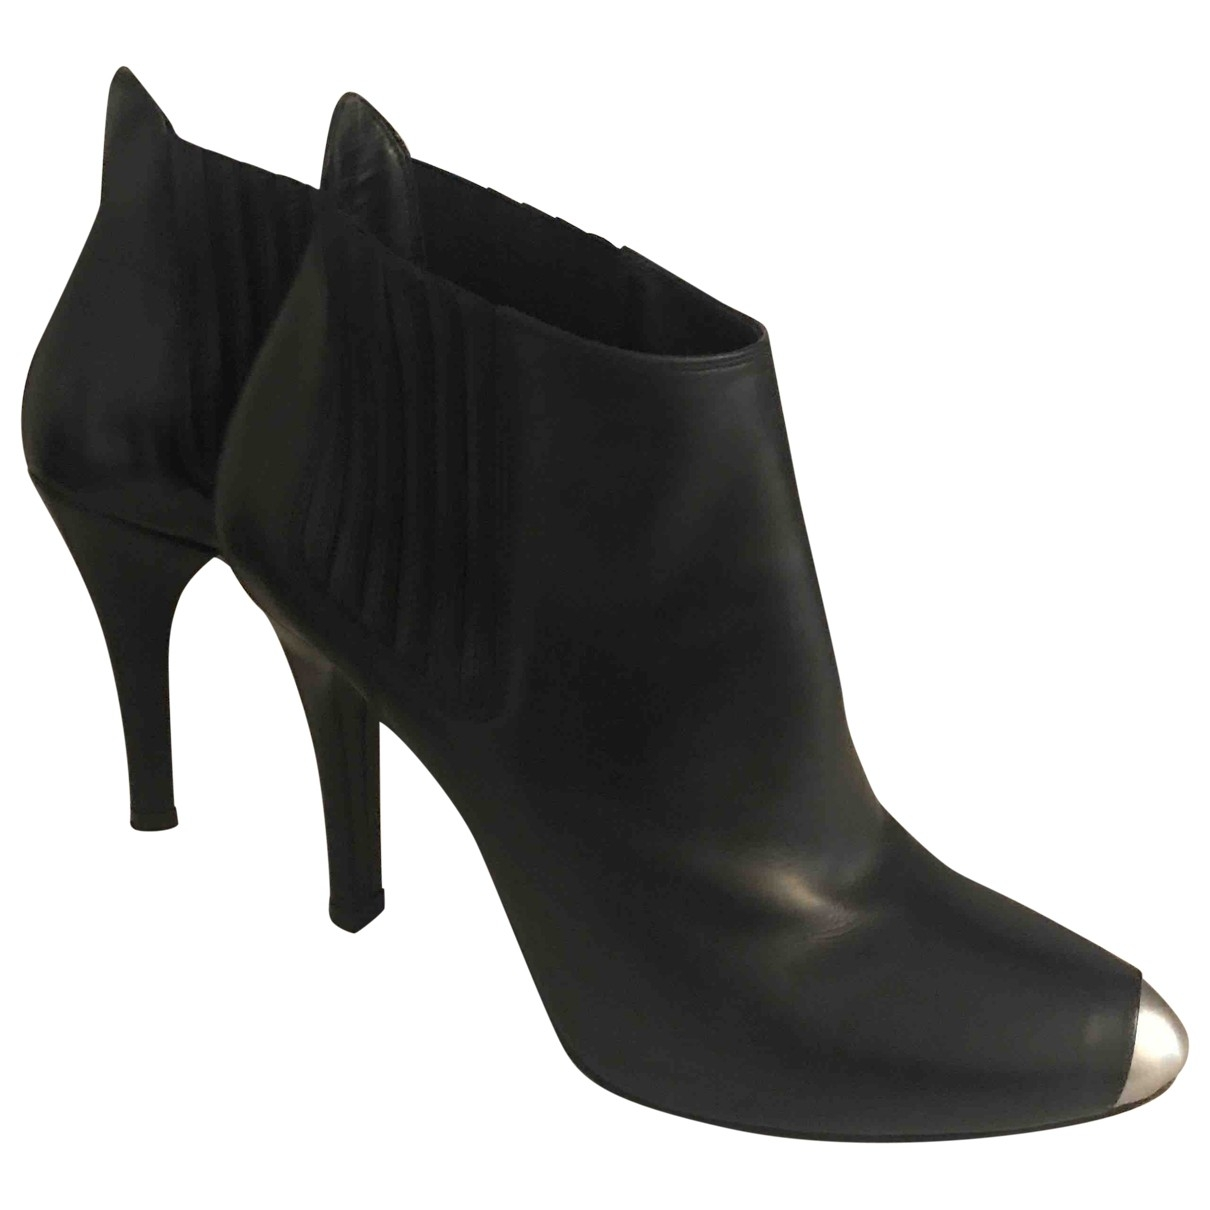 Barbara Bui \N Black Leather Ankle boots for Women 38 EU